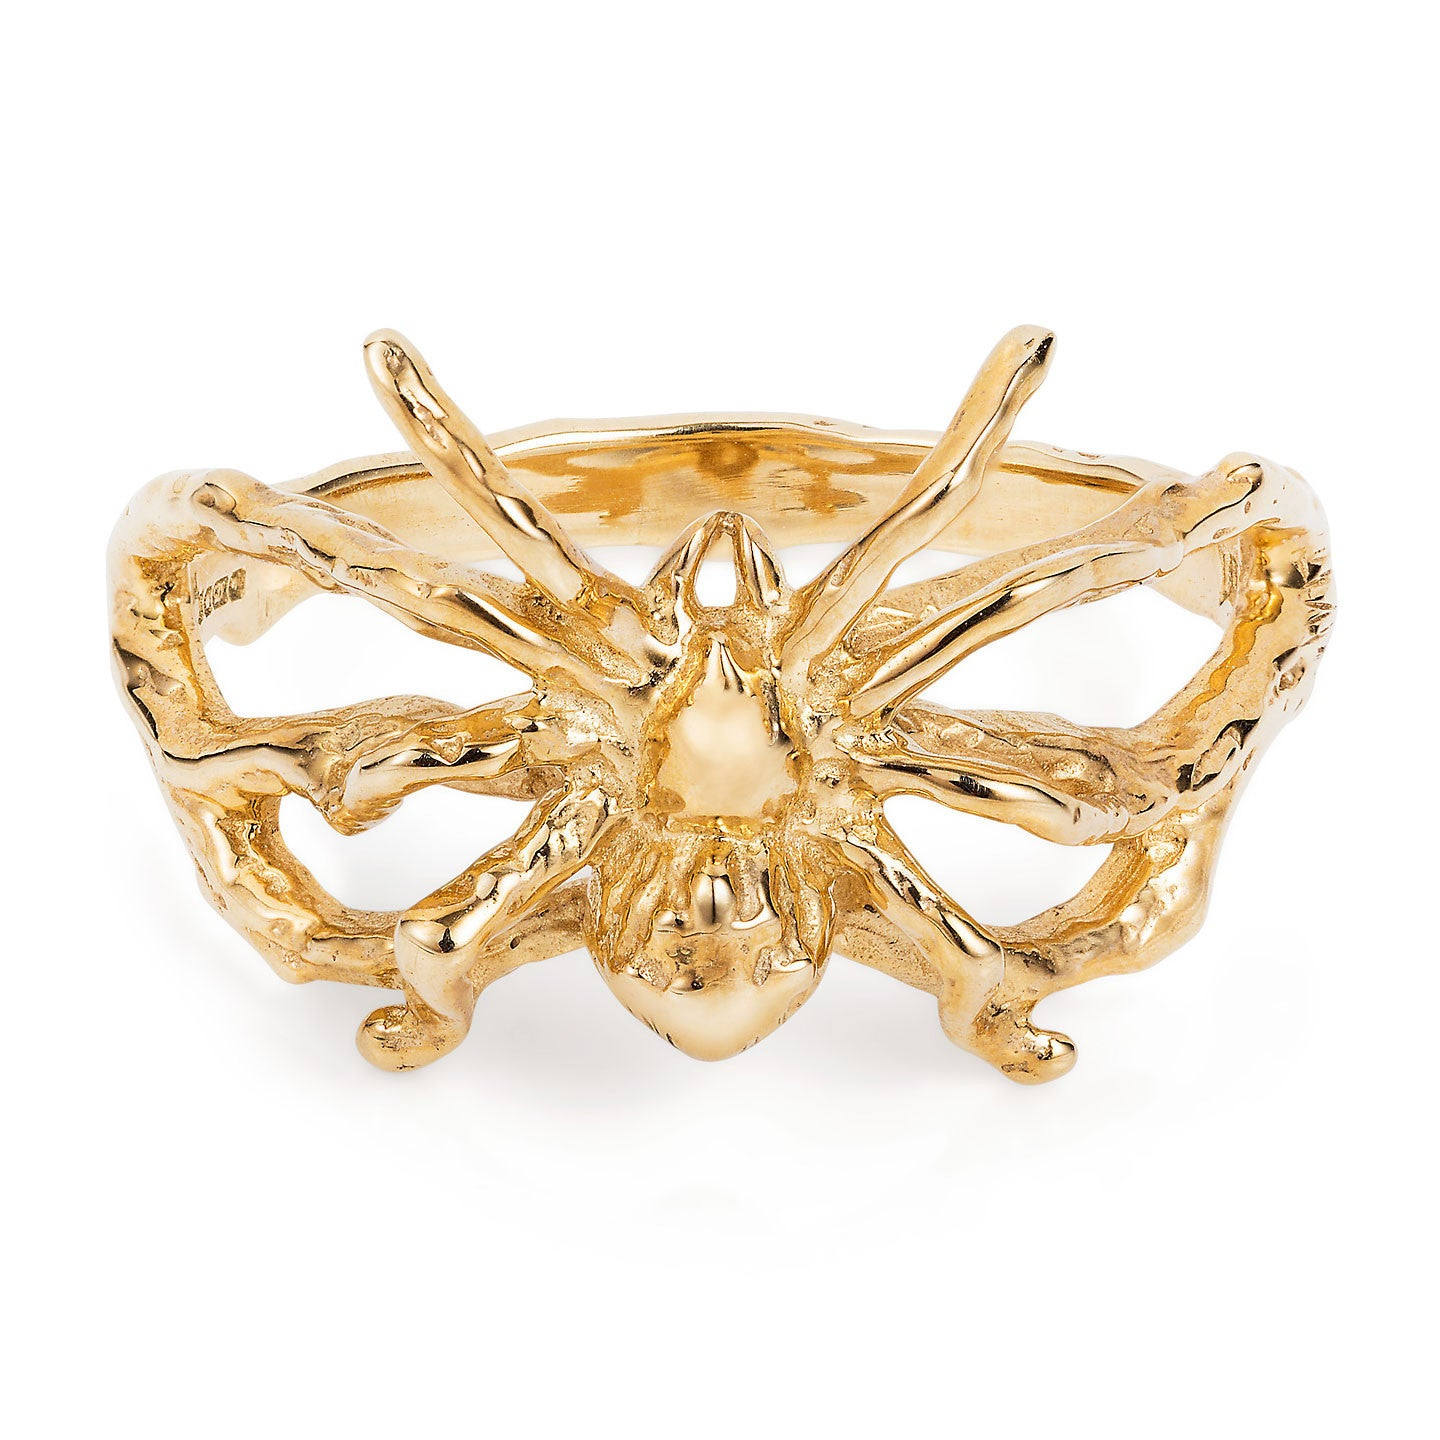 9ct Gold Little Spider Ring by Yasmin Everley